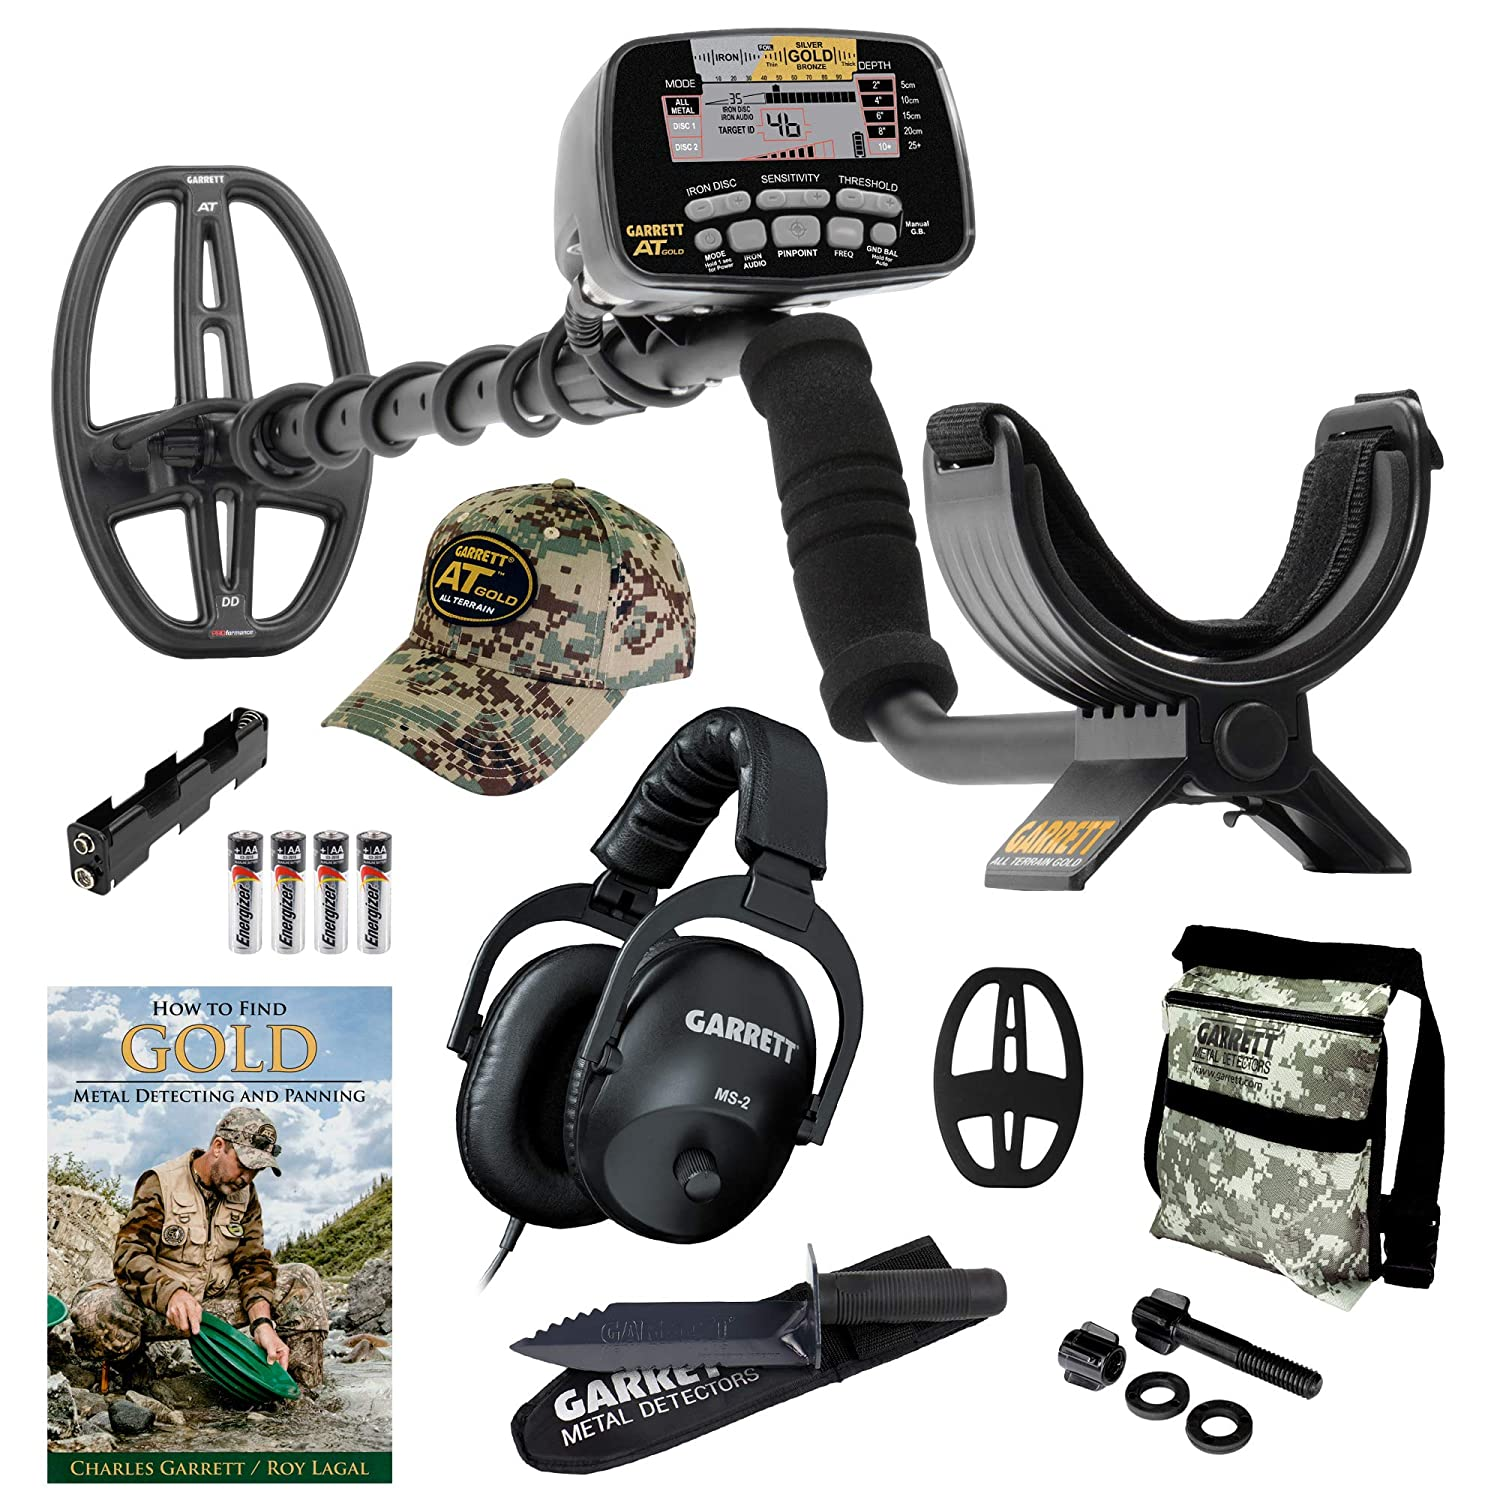 Amazon.com: GARRETT AT GOLD METAL DETECTOR W/EDGE DIGGER CAMO POUCH BOOK &  INSTRUCTION DVD by MDS-ATGOLD-DIGGER-CAMO: Camera & Photo